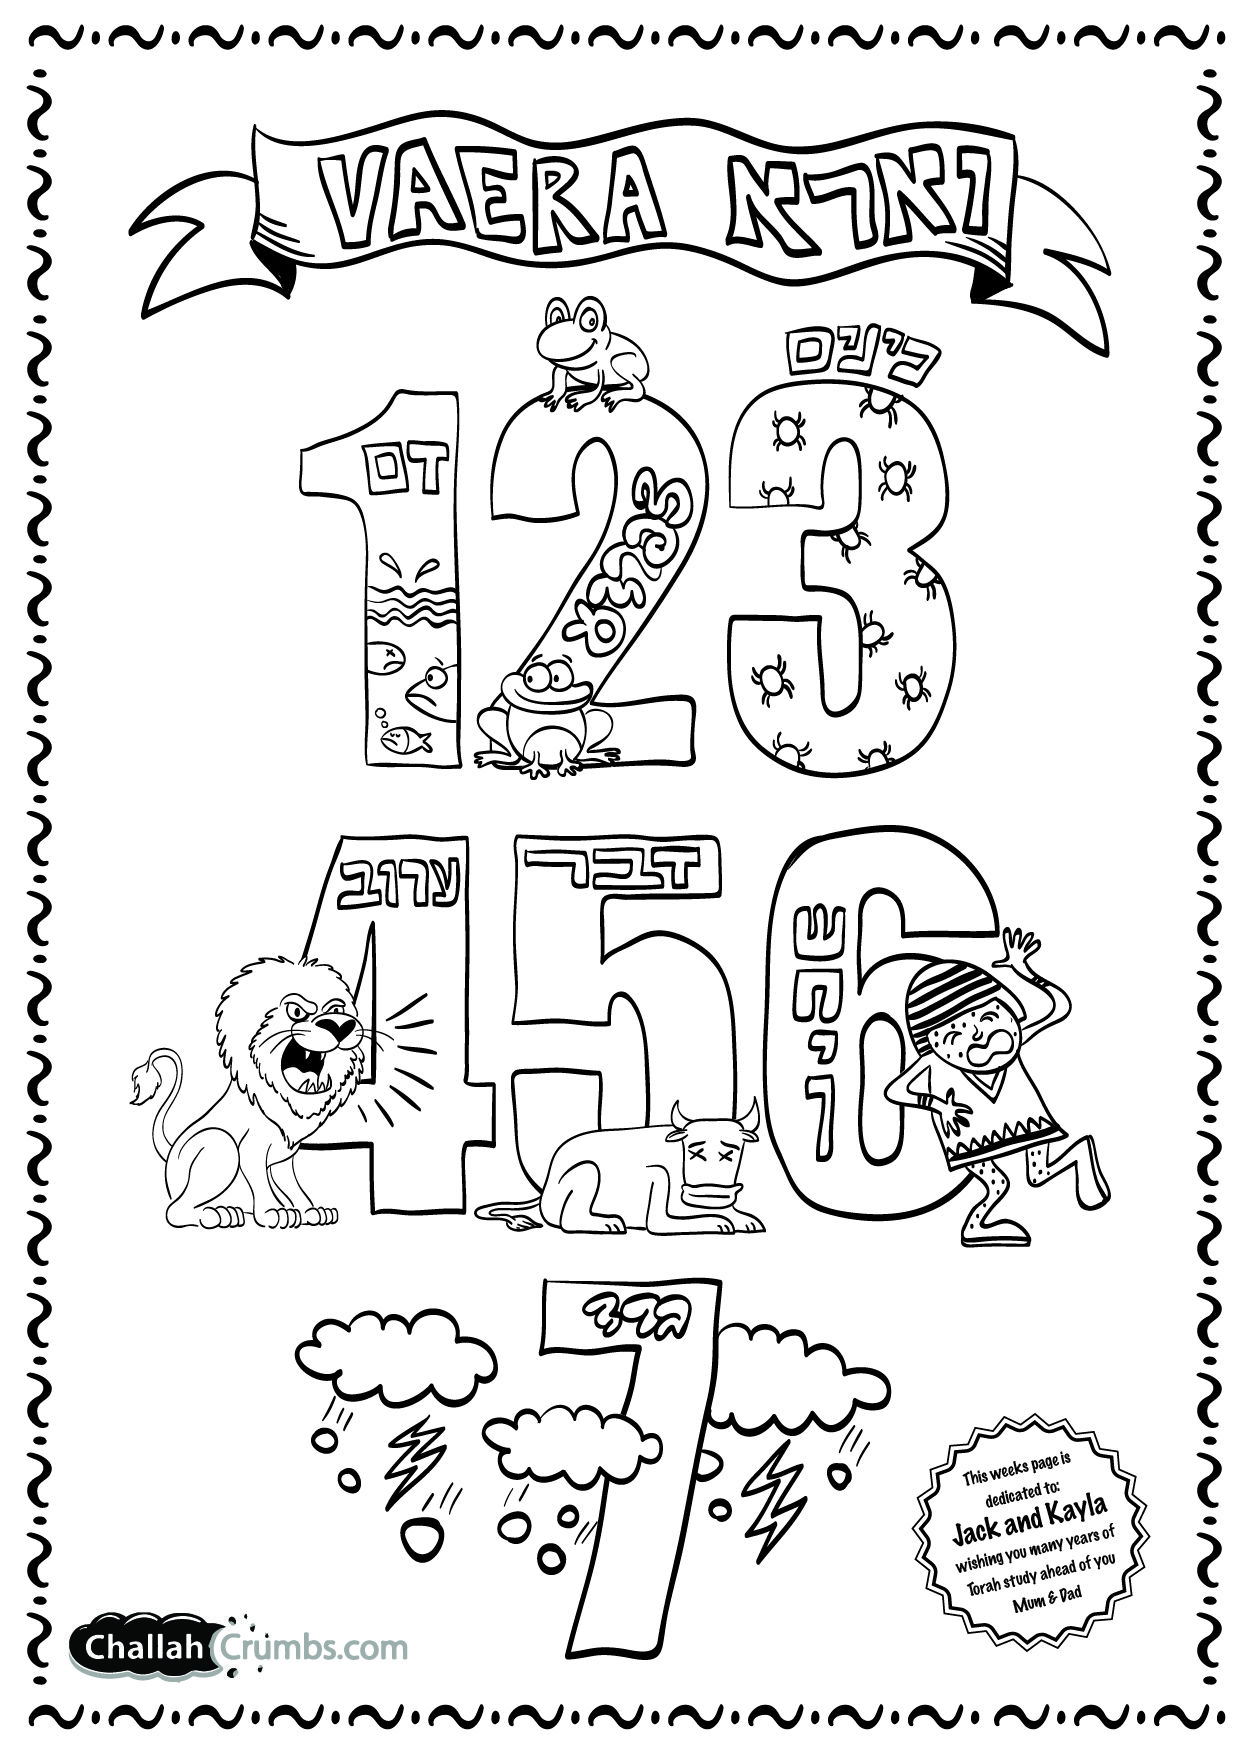 coloring page for parshat vaayra (click on picture to